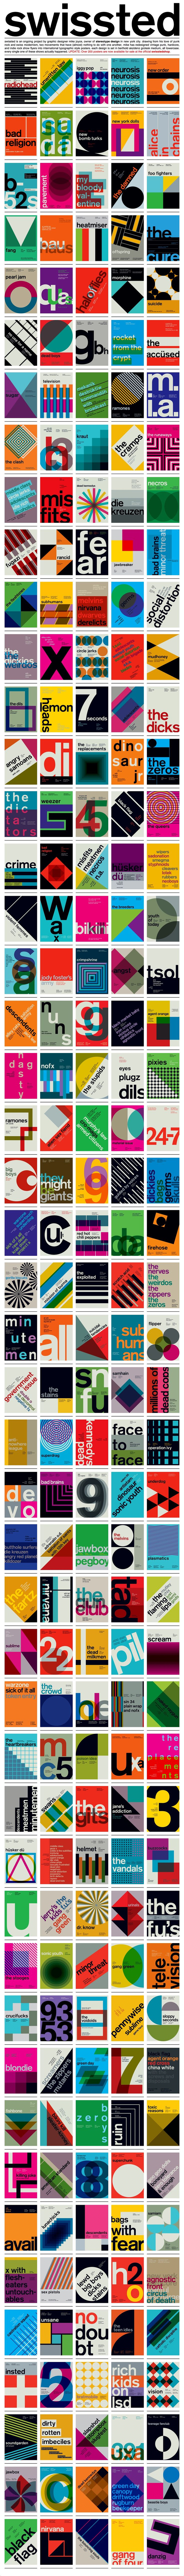 swissted is an ongoing project by graphic designer mike joyce. drawing from his love of punk rock and swiss modernism, two movements that have (almost) nothing to do with one another, mike has redesigned vintage punk, hardcore, new wave, and indie rock show flyers into international typographic style posters. each design is set in lowercase berthold akzidenz-grotesk medium (not helvetica).